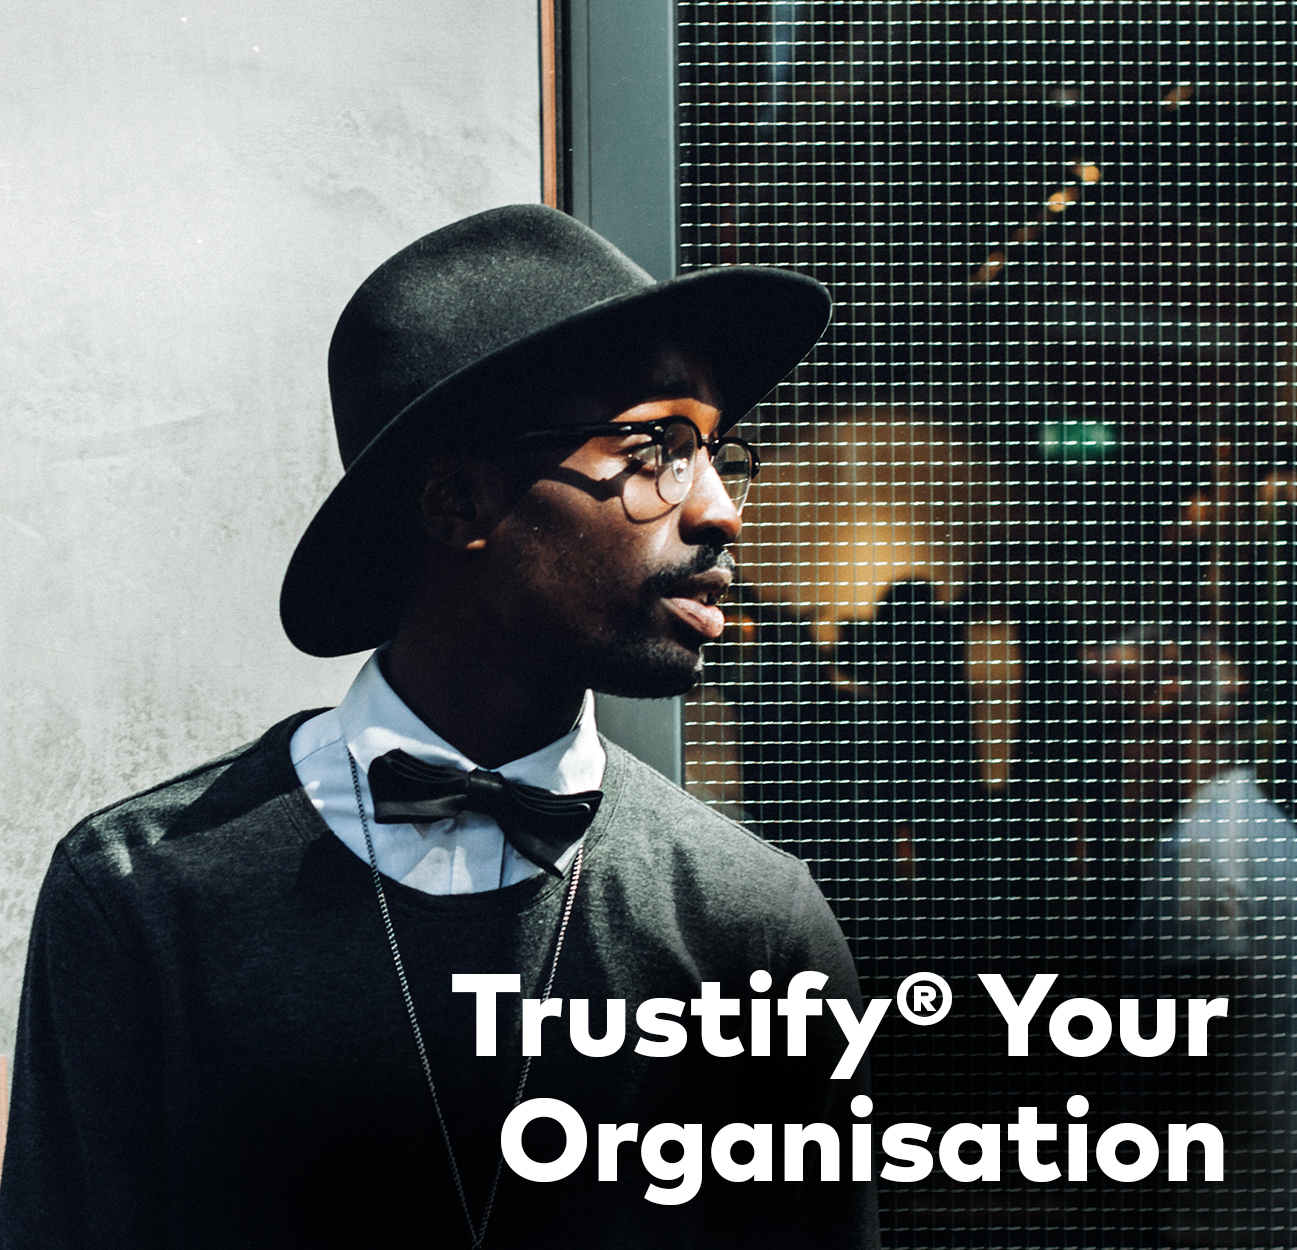 1_Mext_Consulting_Firm_Melbourne_Trust_Trustify_Your_Organisation.jpg